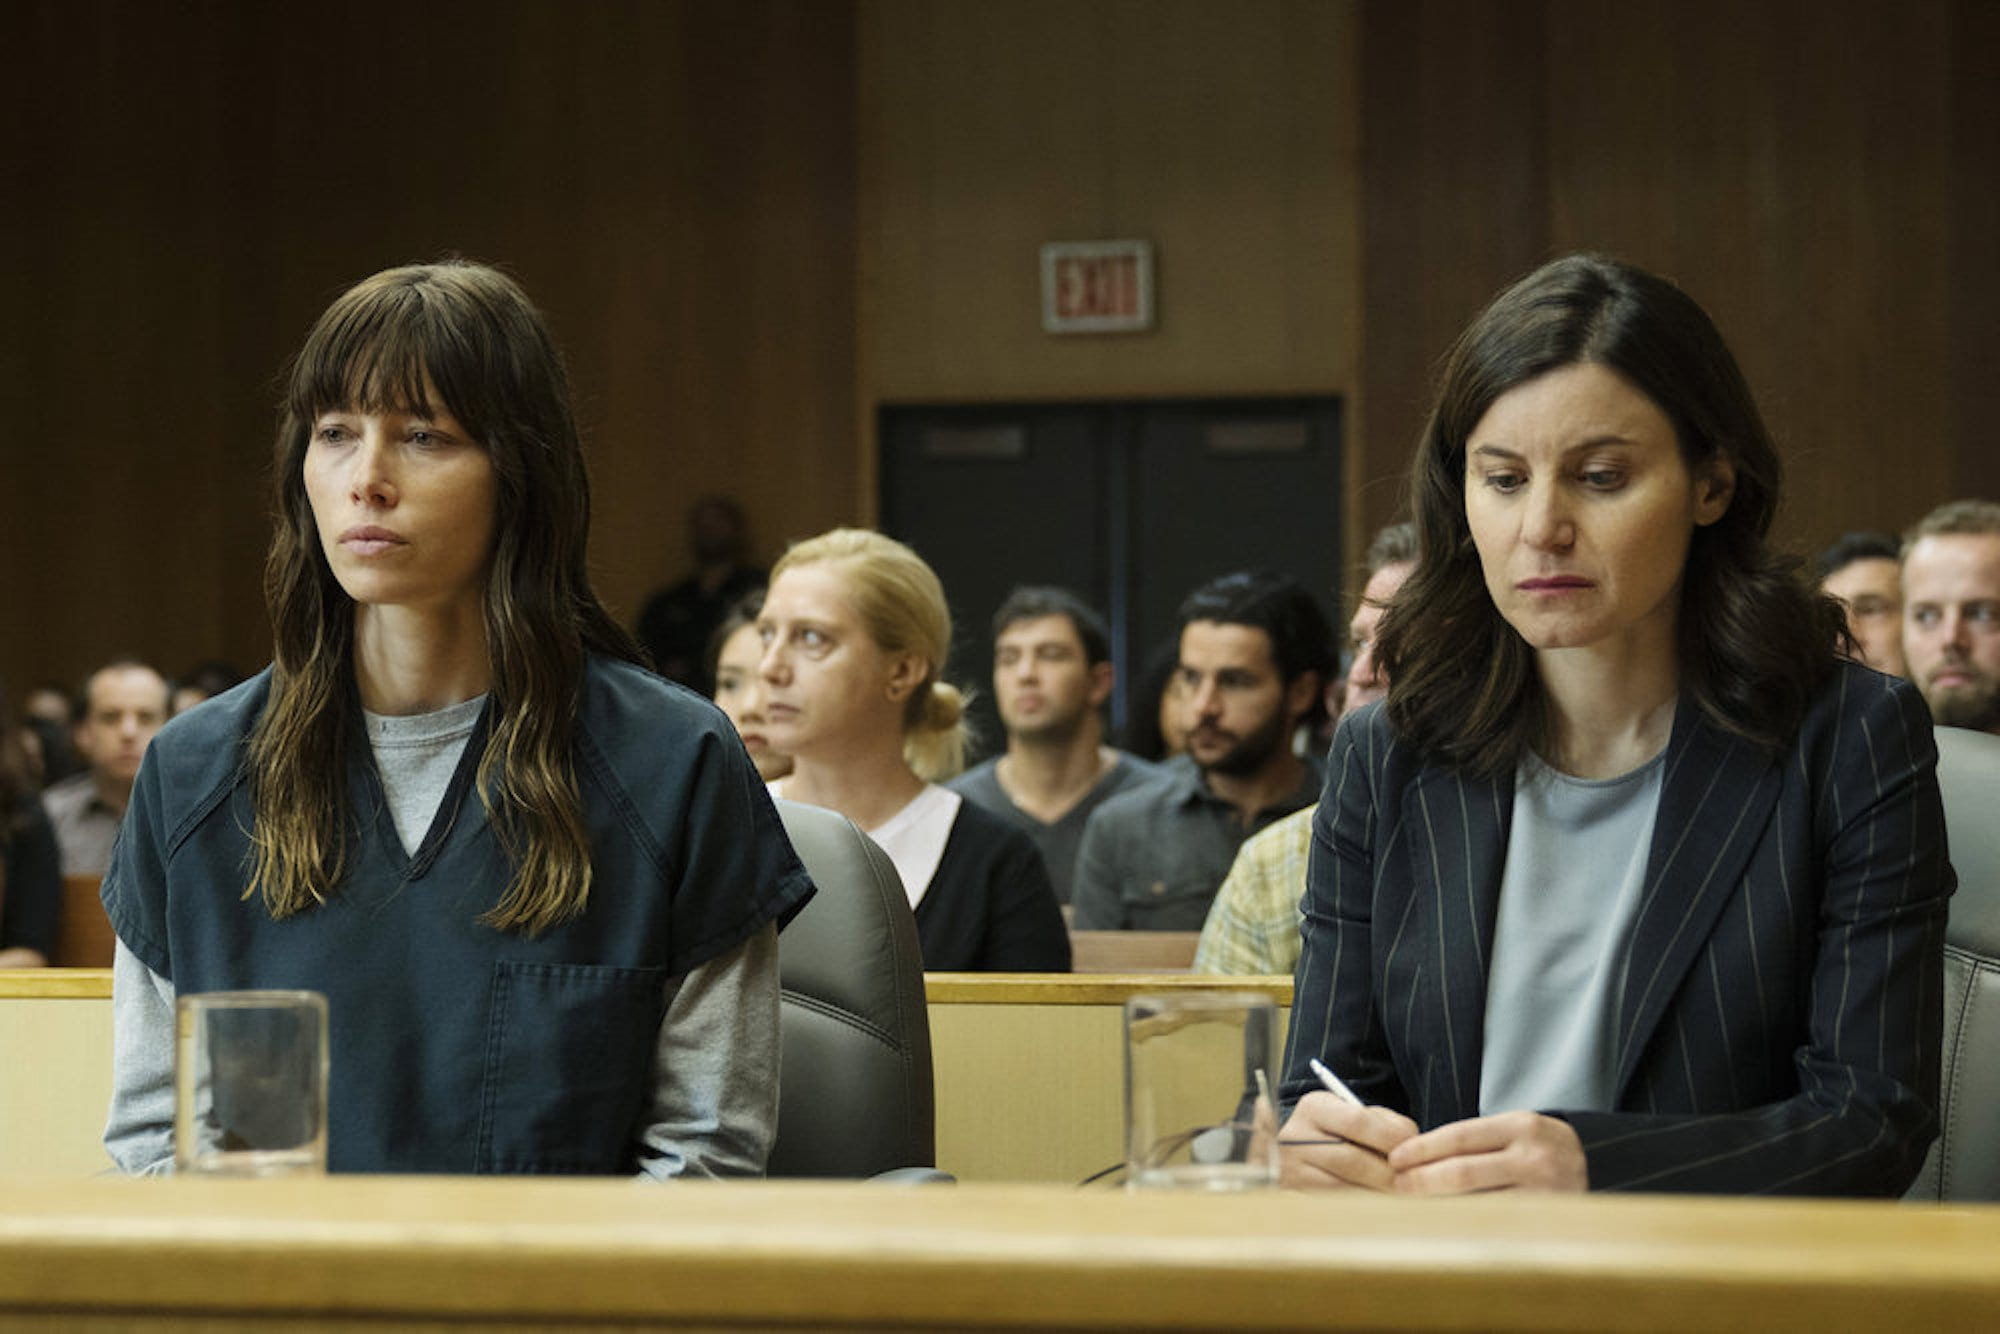 If you haven't checked out USA's 'The Sinner' yet, pause whatever you're enjoying to indulge in the crime mystery ASAP. Here's why.